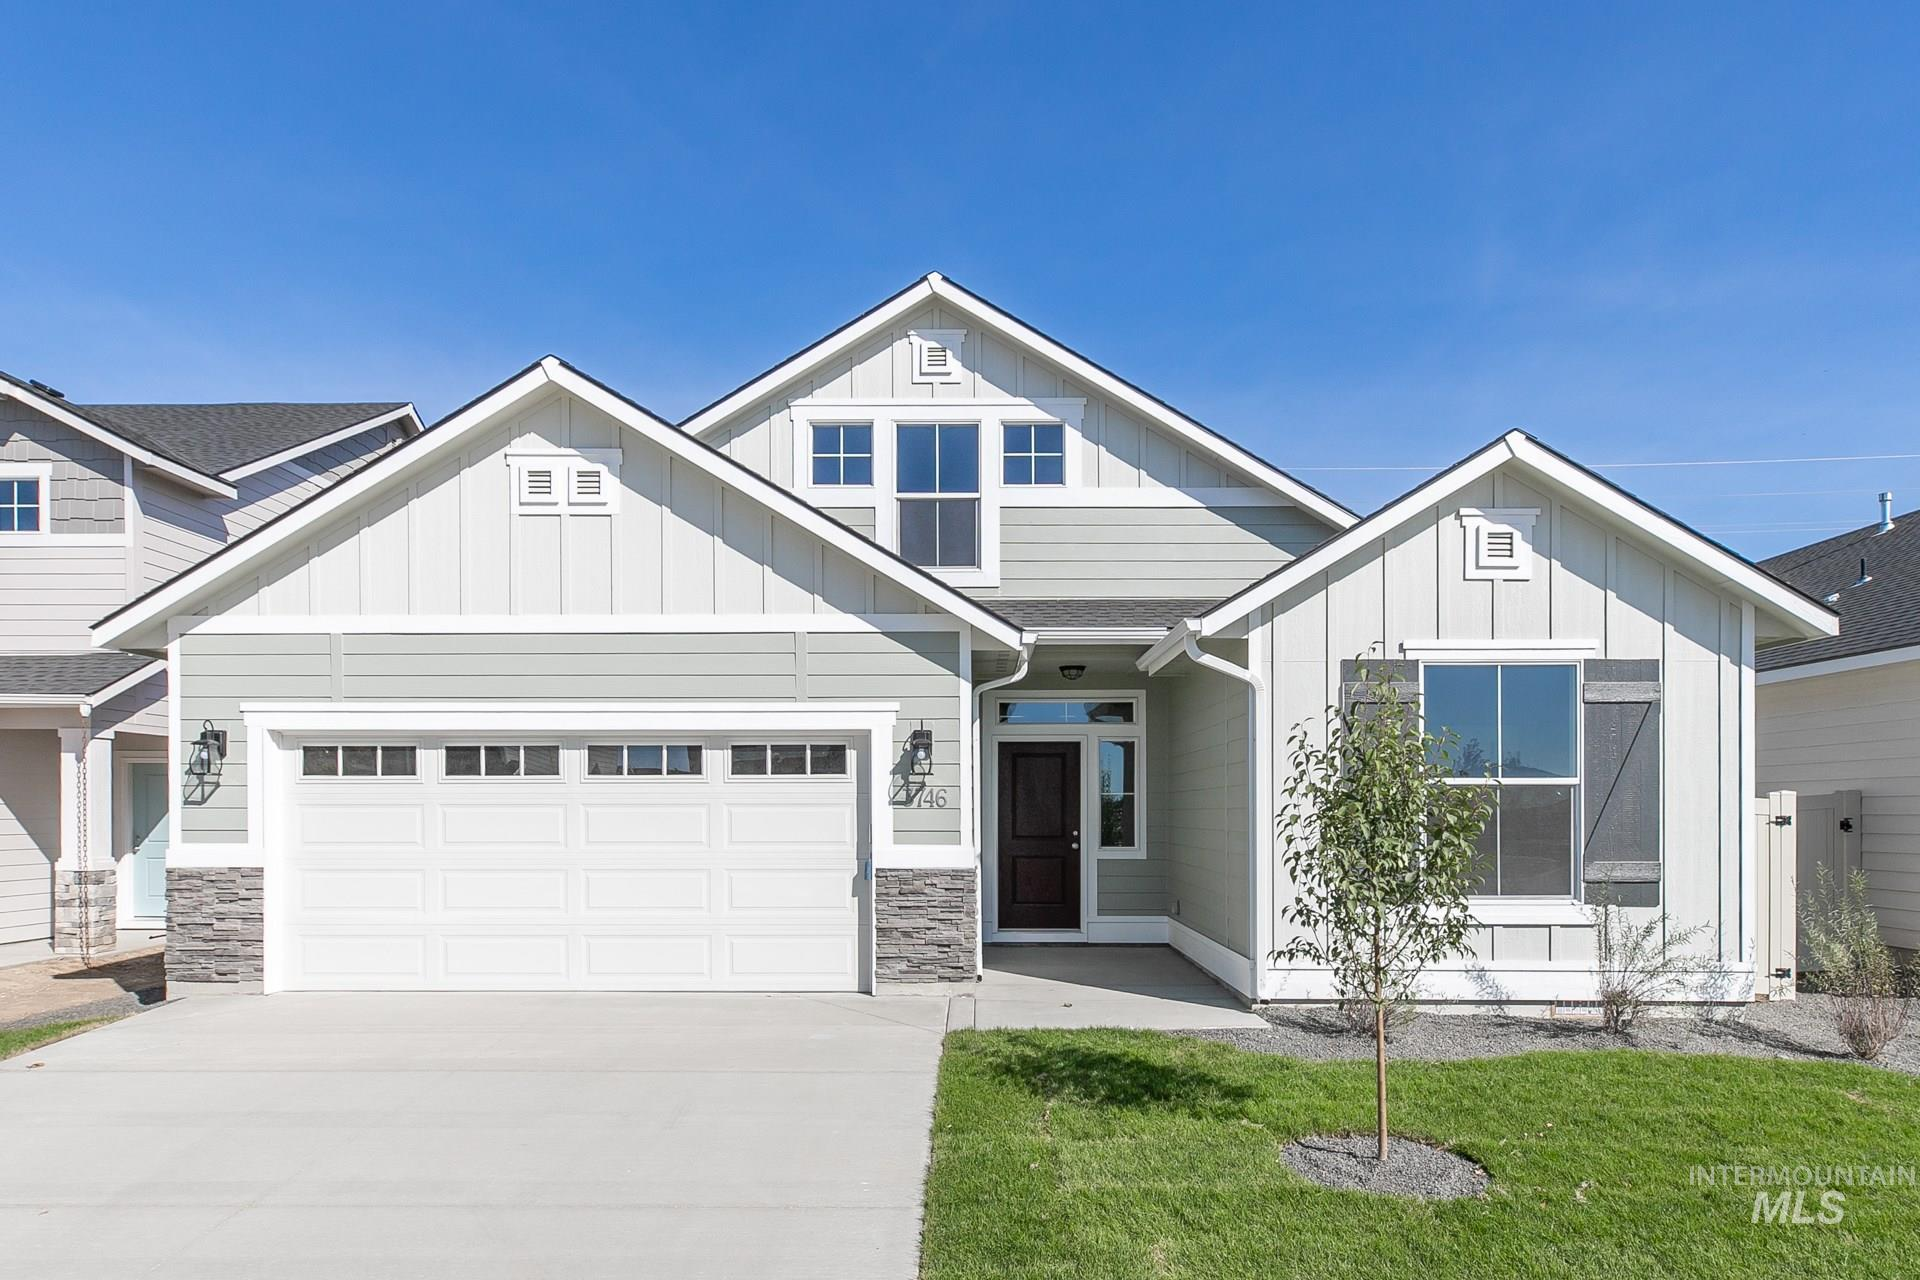 Get $25k with our Buy Now, Get More Promo NOW thru 7/31. Want to tour this home NOW? Get on-demand access with TOUR NOW. The Capri Bonus 1848 is loaded with personality where the great room style kitchen & living room take center stage, plenty of space, windows, light, & an eat in nook. Price includes dual vanities, upgraded cabinets, evp flooring, partial fencing, quartz kitchen countertops, stainless appliances, no backyard neighbors, partial fencing, and more features. Photos are Similar. RCE-923